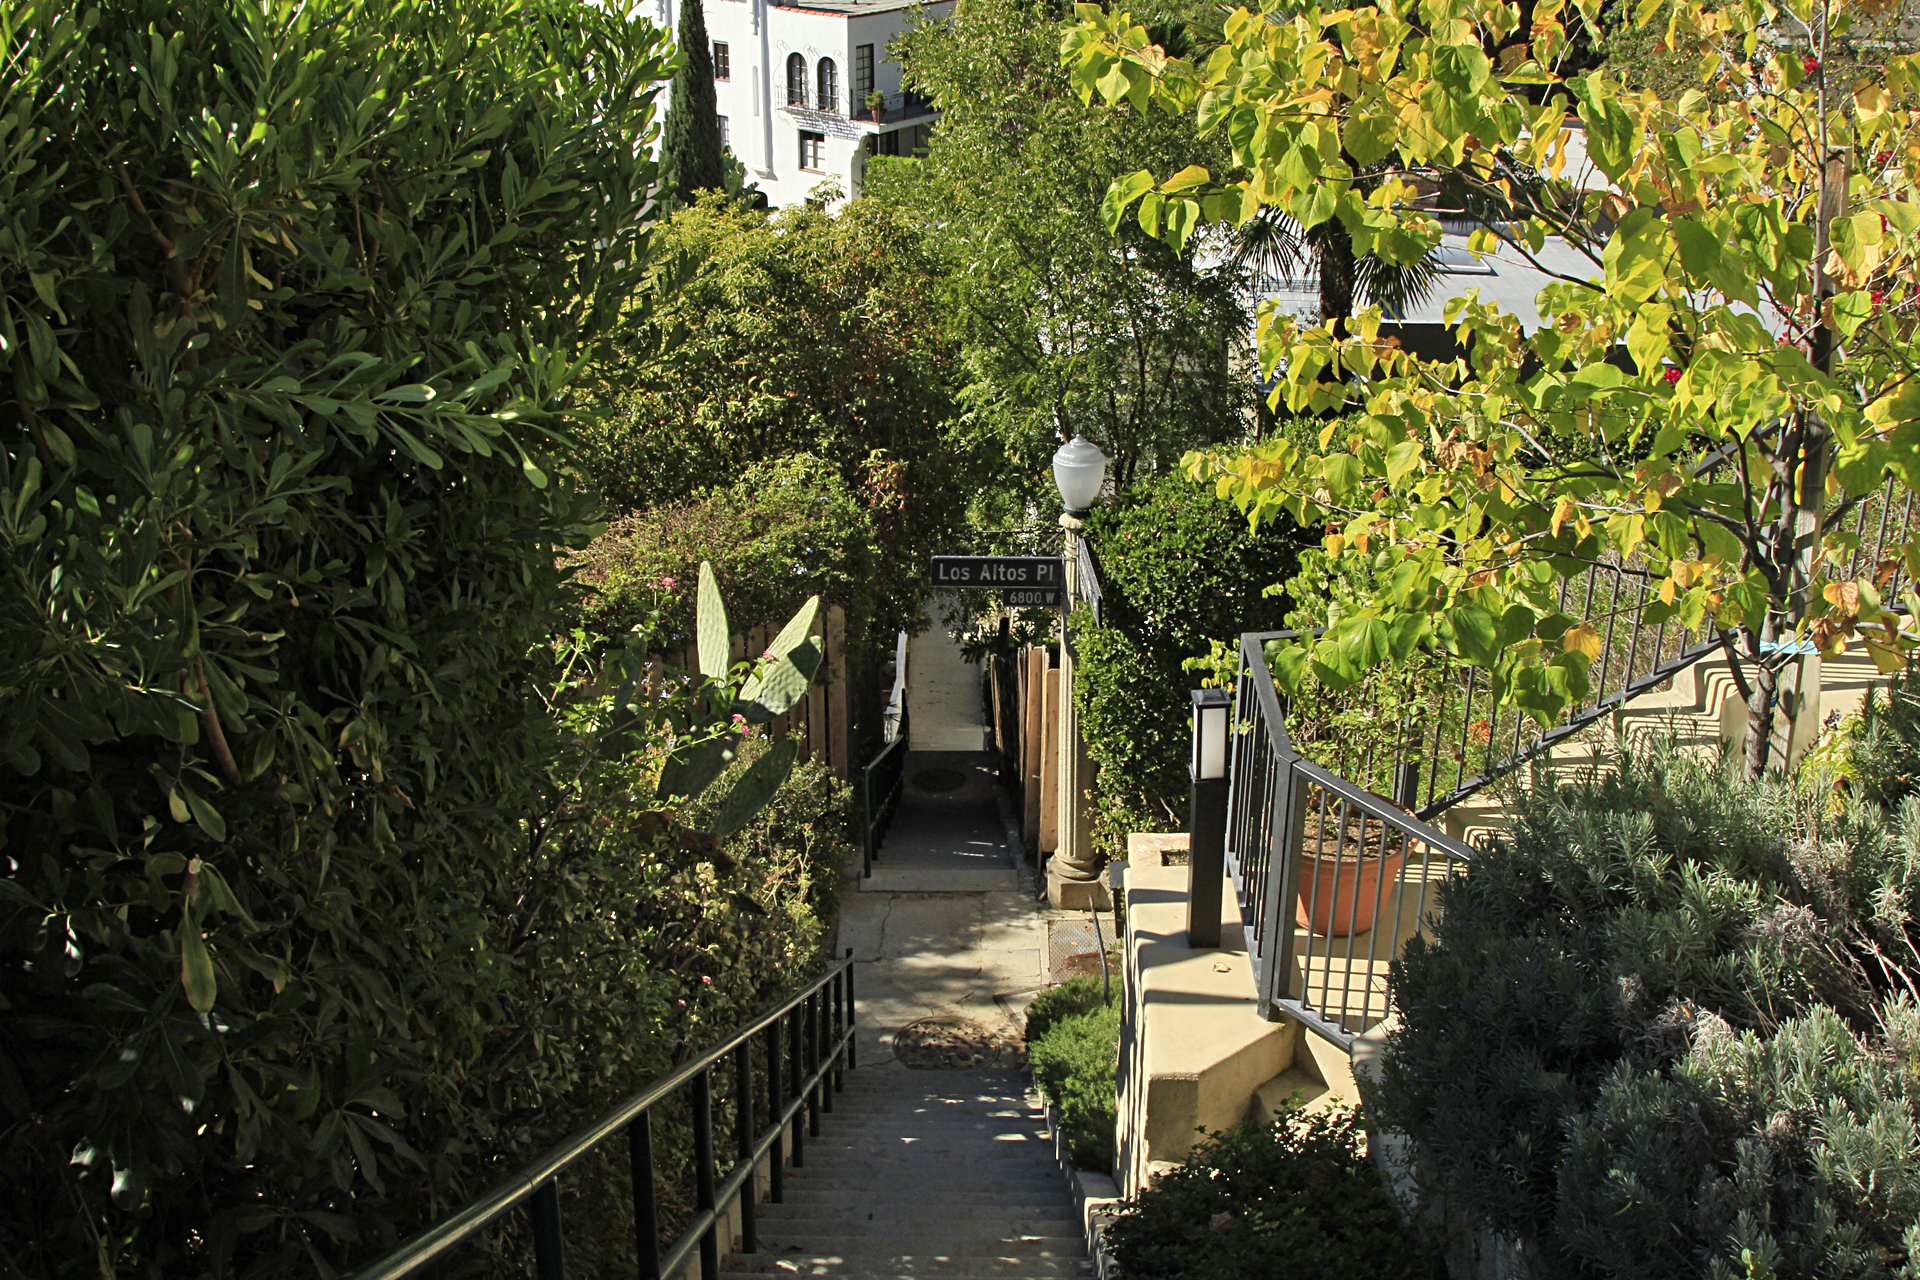 Although there are other hillside homes very close to the tower, the benefit of the riding the elevator, which is protected by a locked iron gate, belongs solely to the residents of the four apartments. Without the elevator, the residents would have to traverse a series of stairs, walkways and half-hidden bridges to get home after parking their cars at street level.